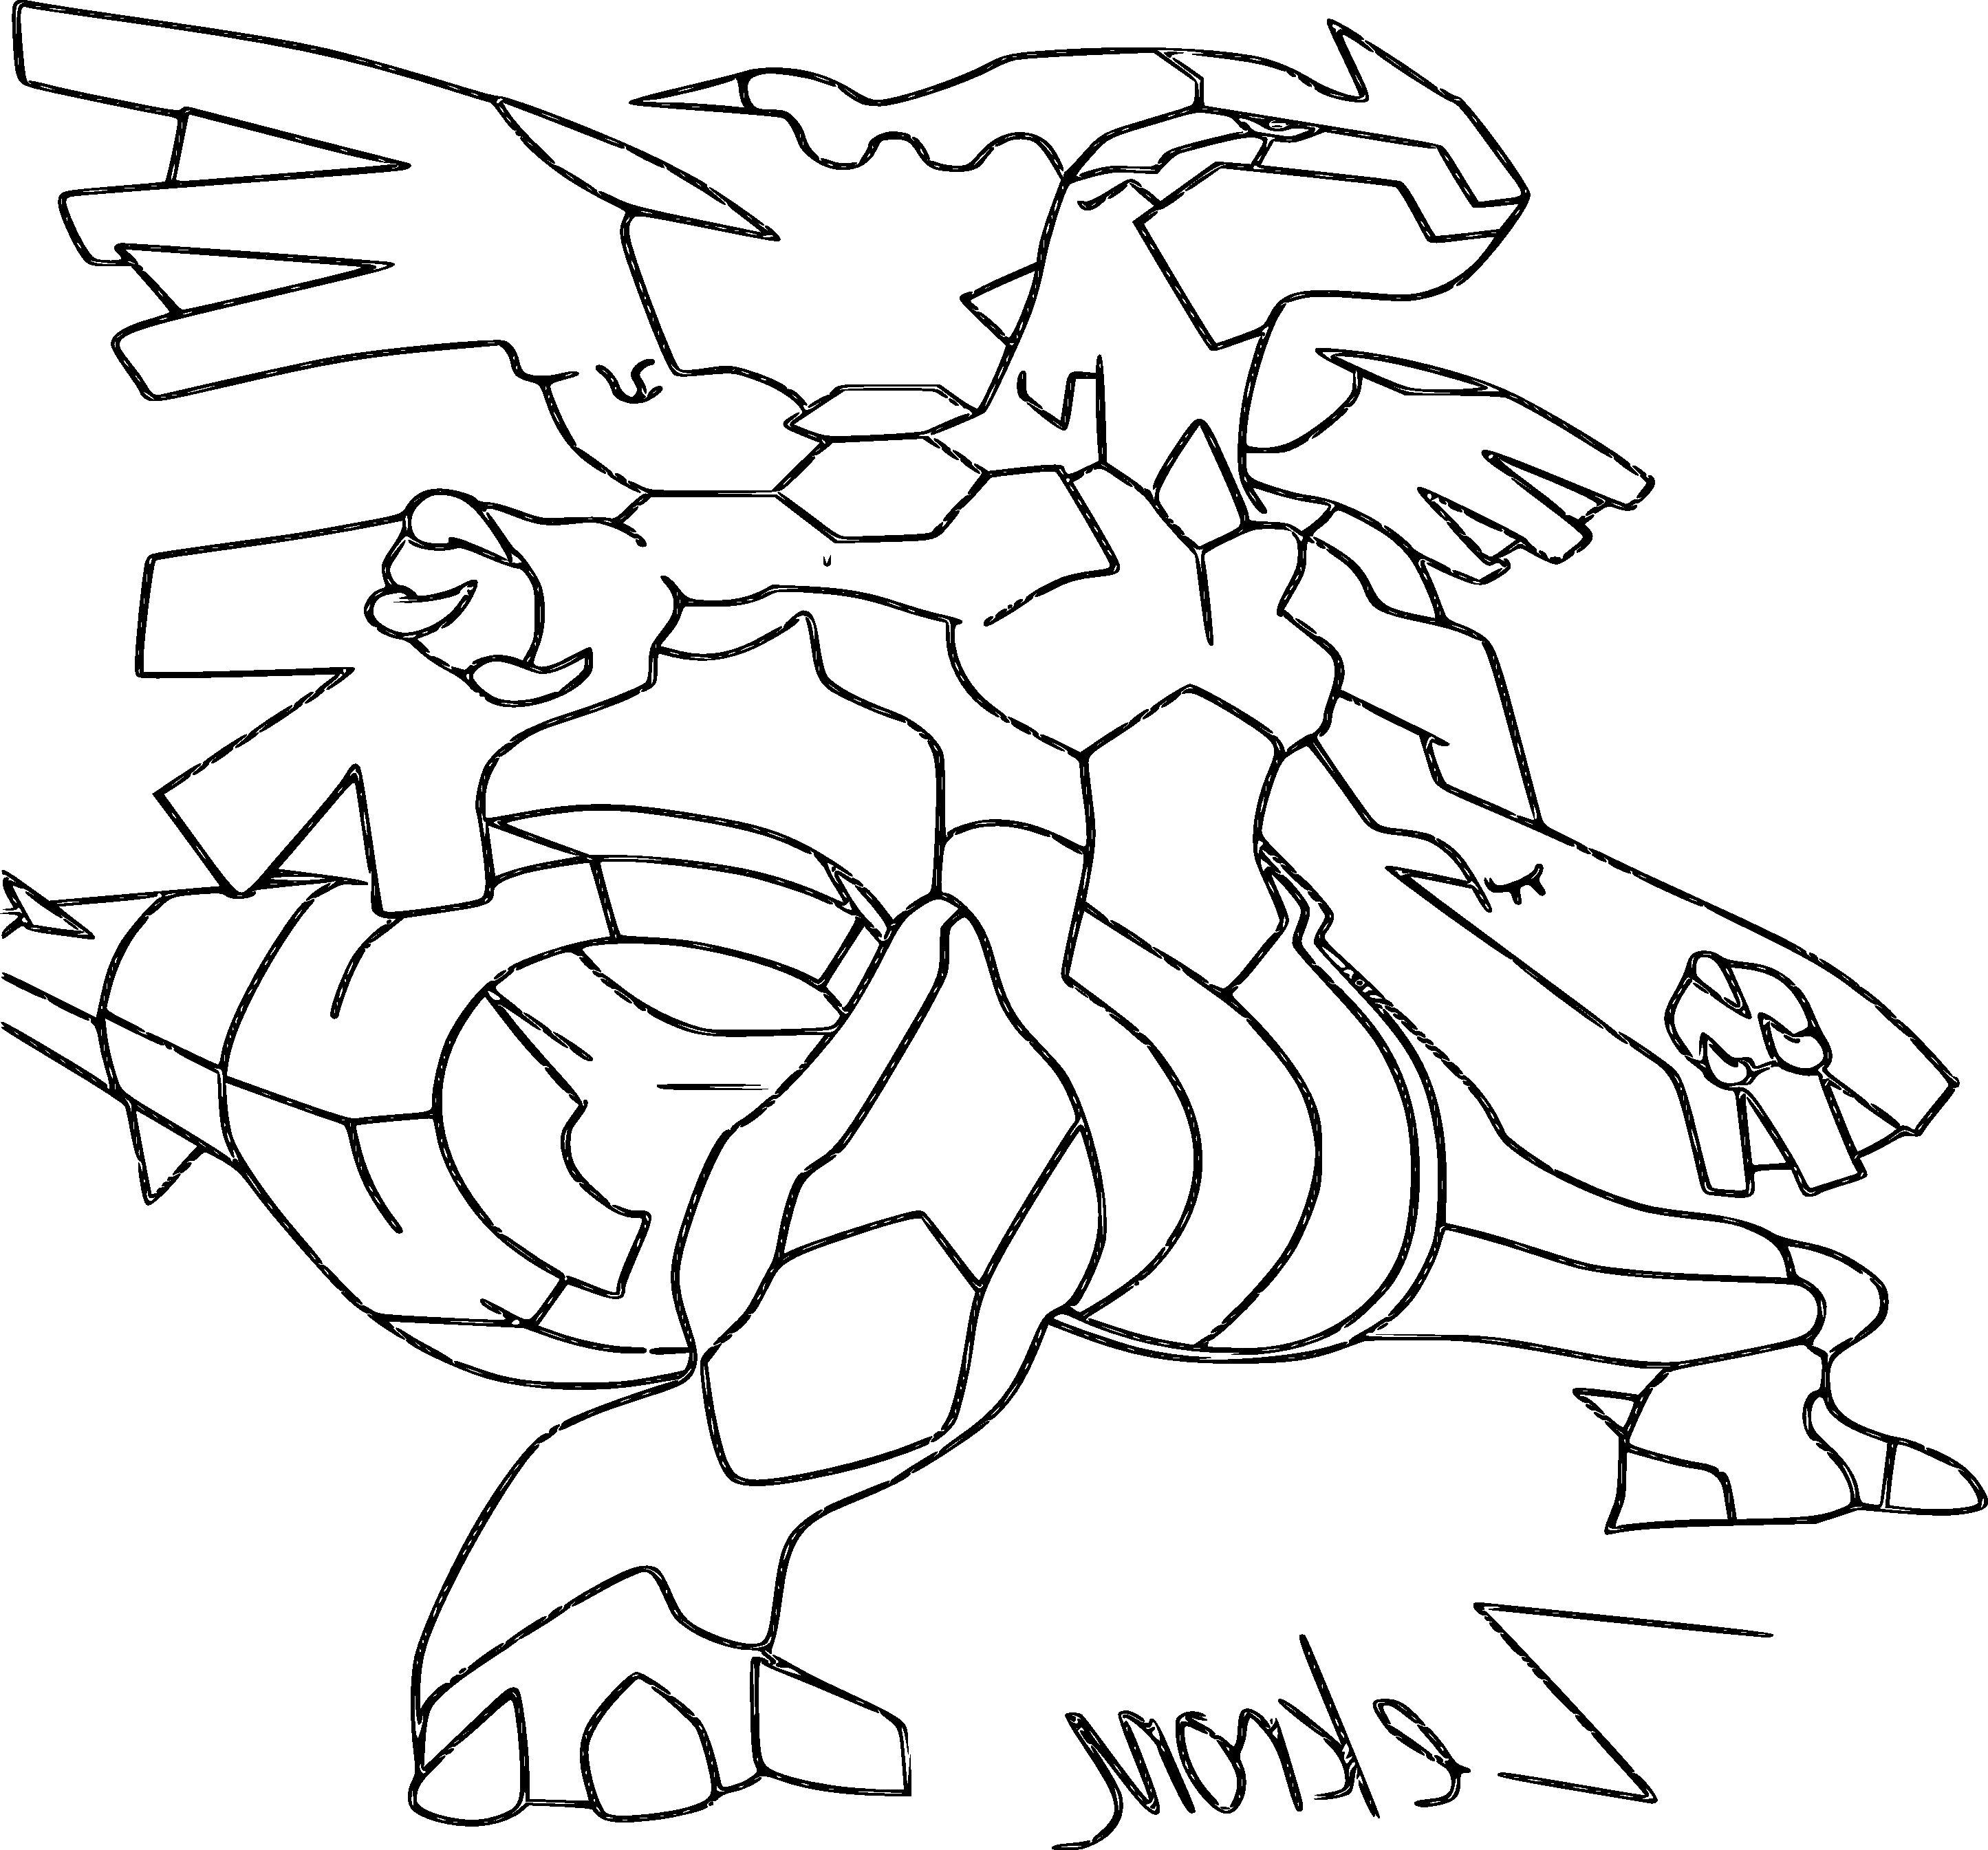 Coloriage Pokemon Zekrom Coloriagepokemon Coloring Pages